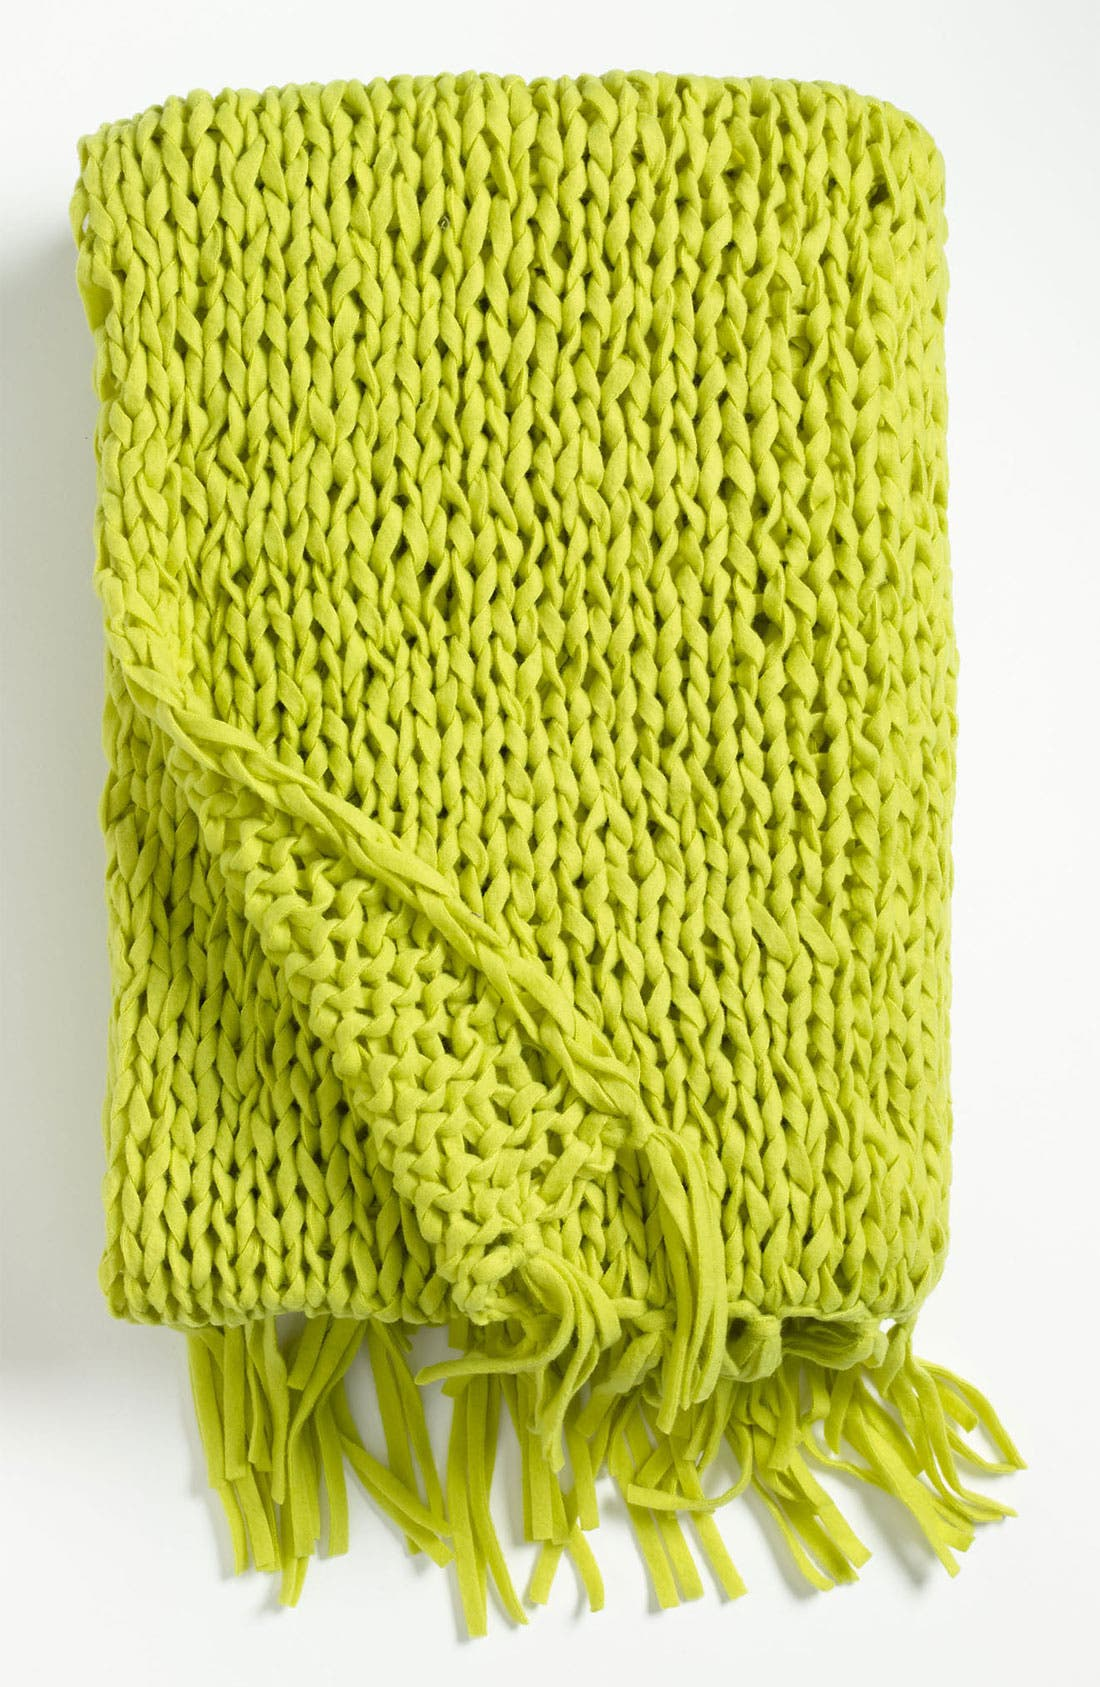 Alternate Image 1 Selected - Nordstrom at Home 'Netting' Knit Throw